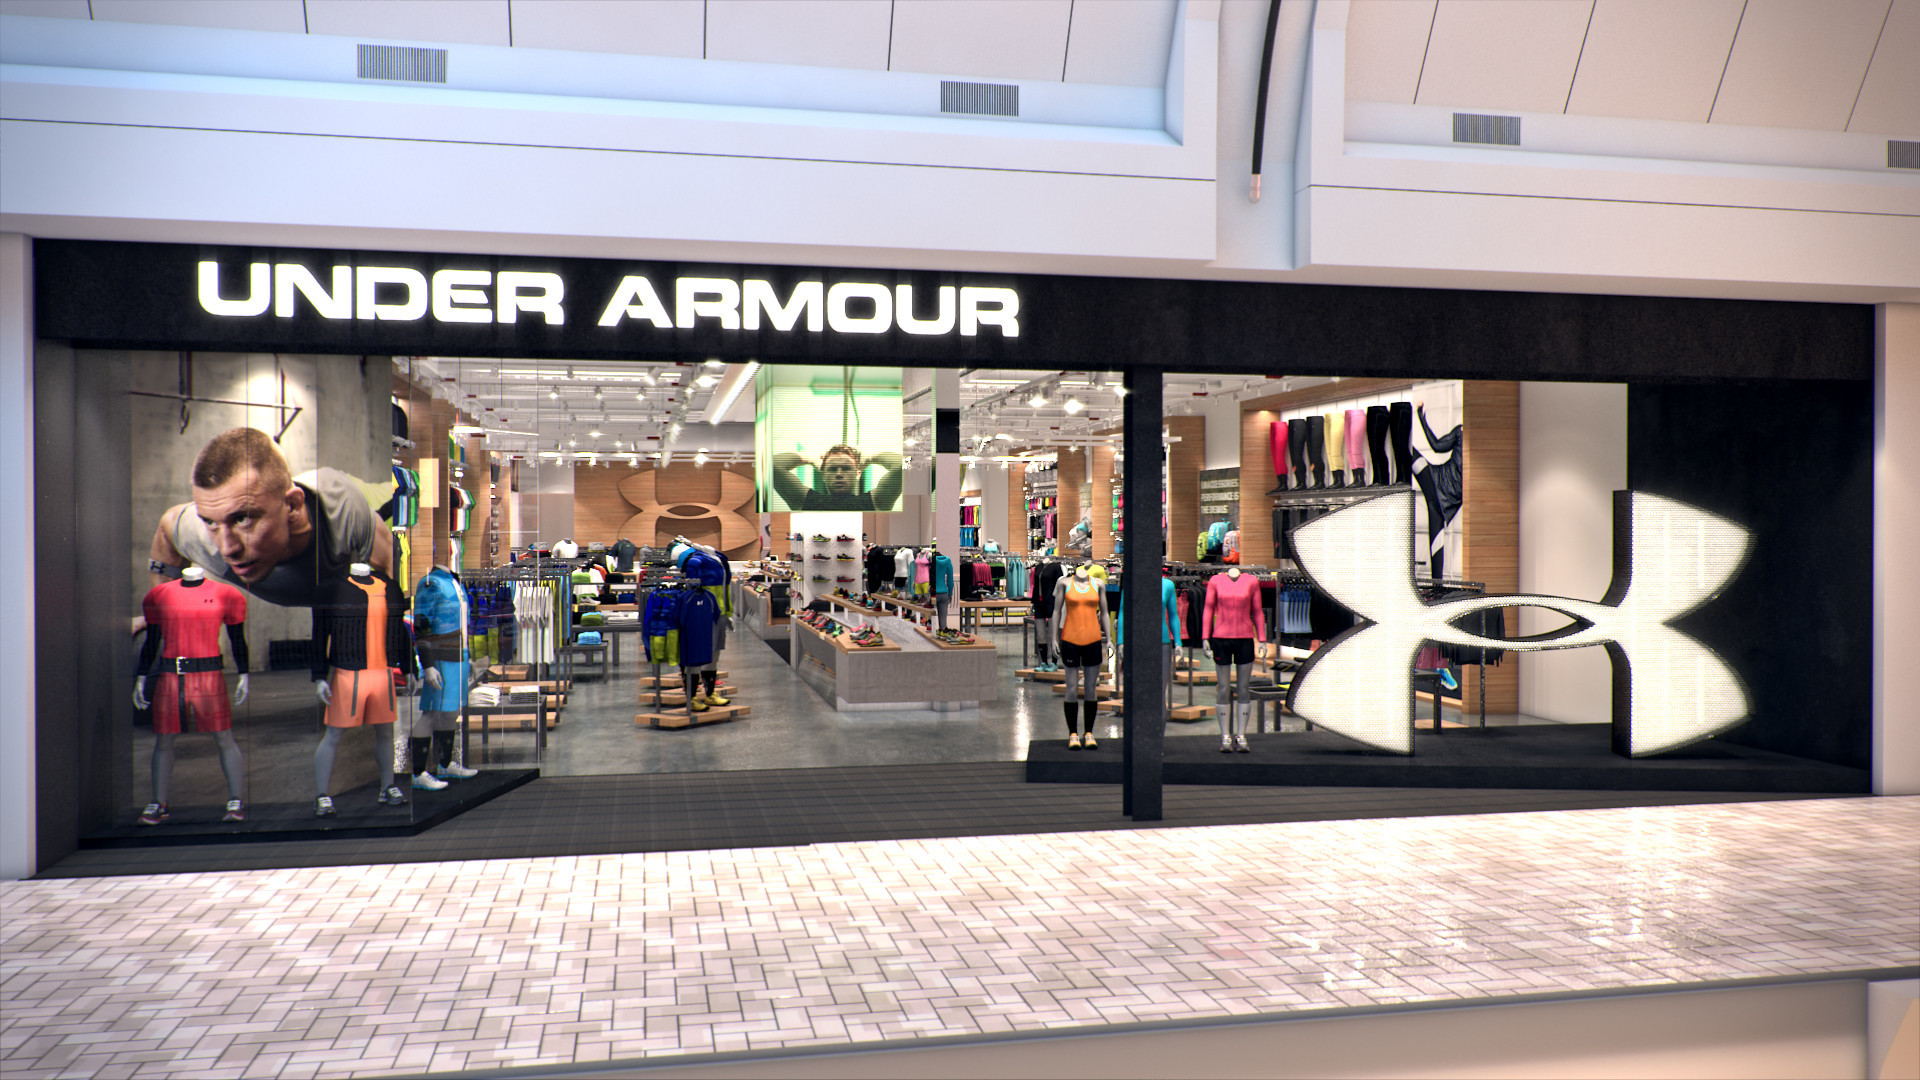 Under Armour to open store in Chicago